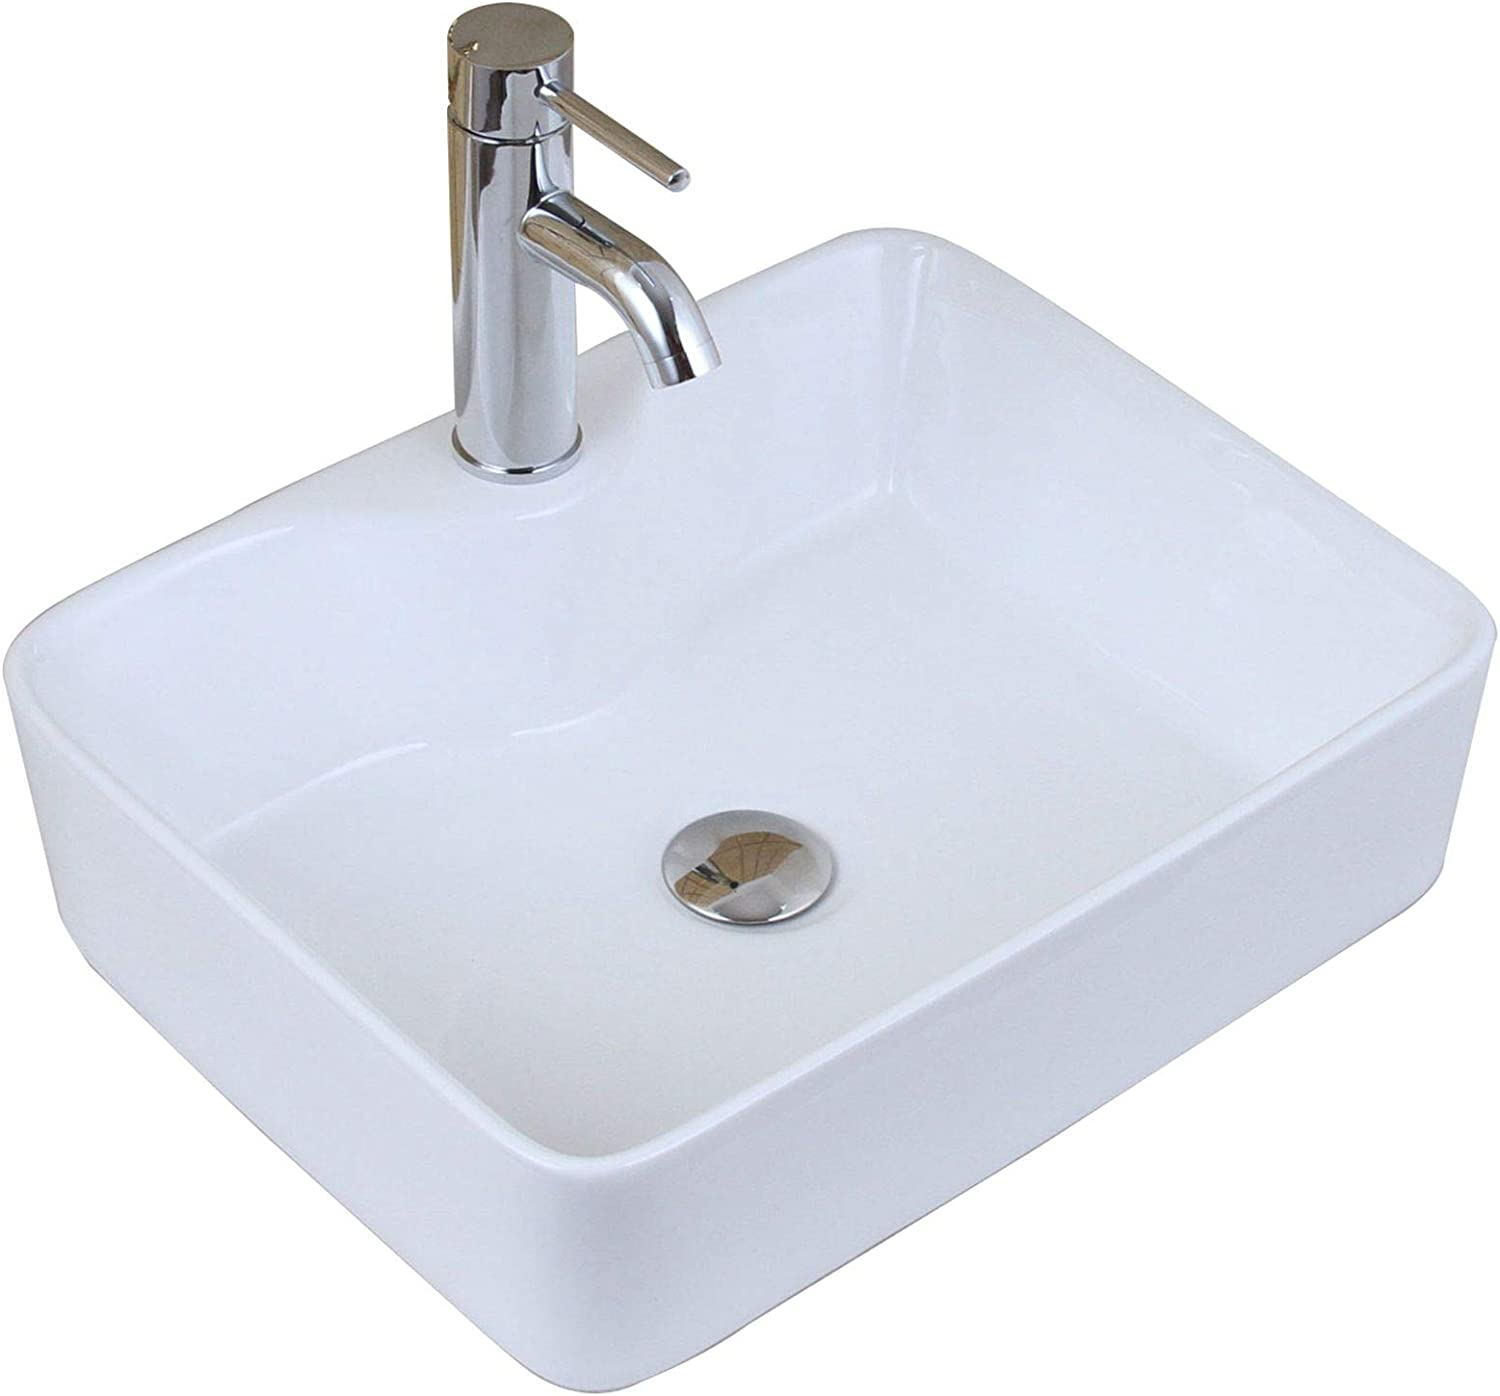 ELITE Bathroom Rectangle White Porcelain Ceramic Vessel Sink Short Chrome Faucet Combo